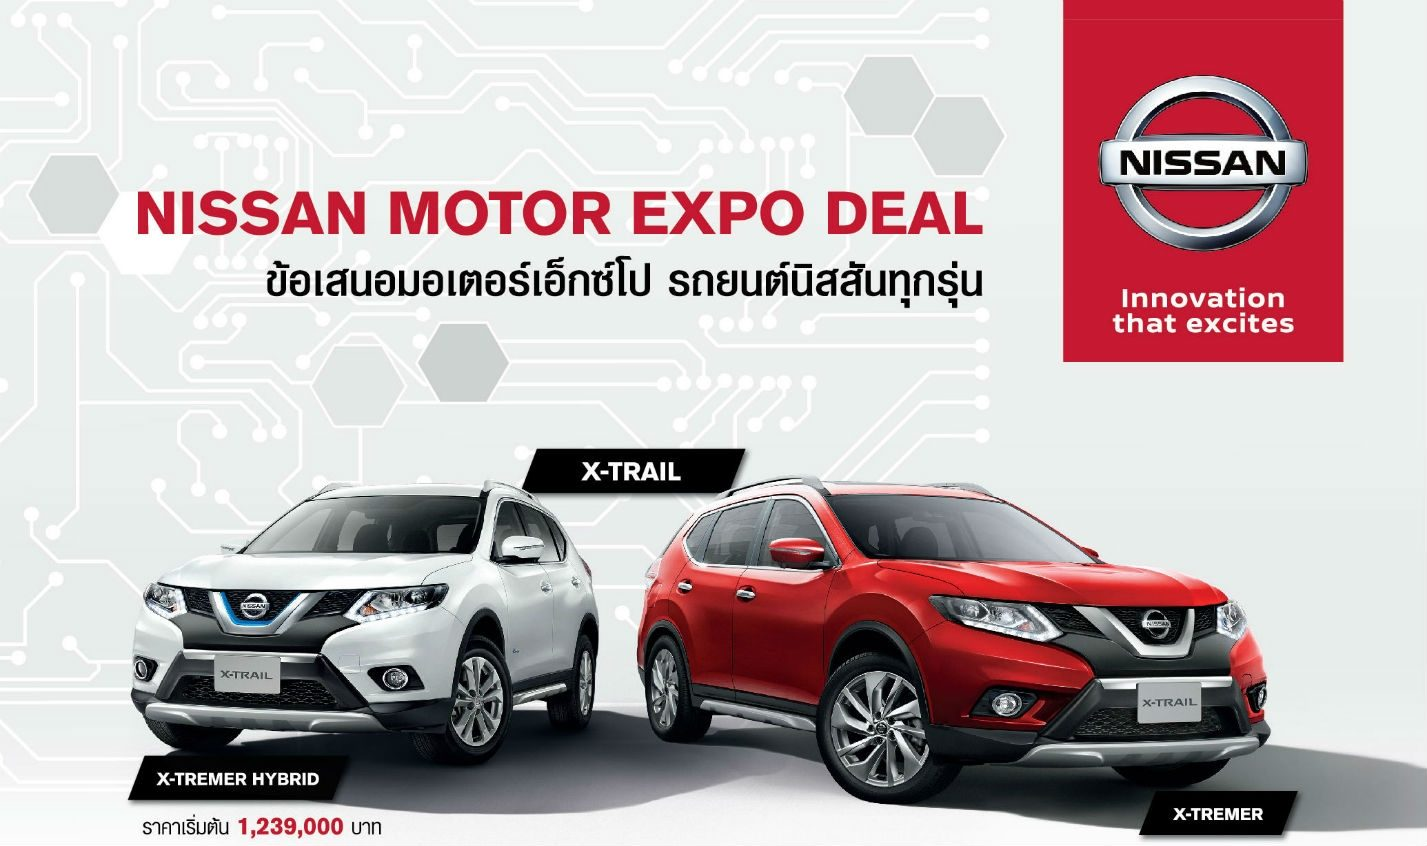 NISSAN MOTOR EXPO DEAL